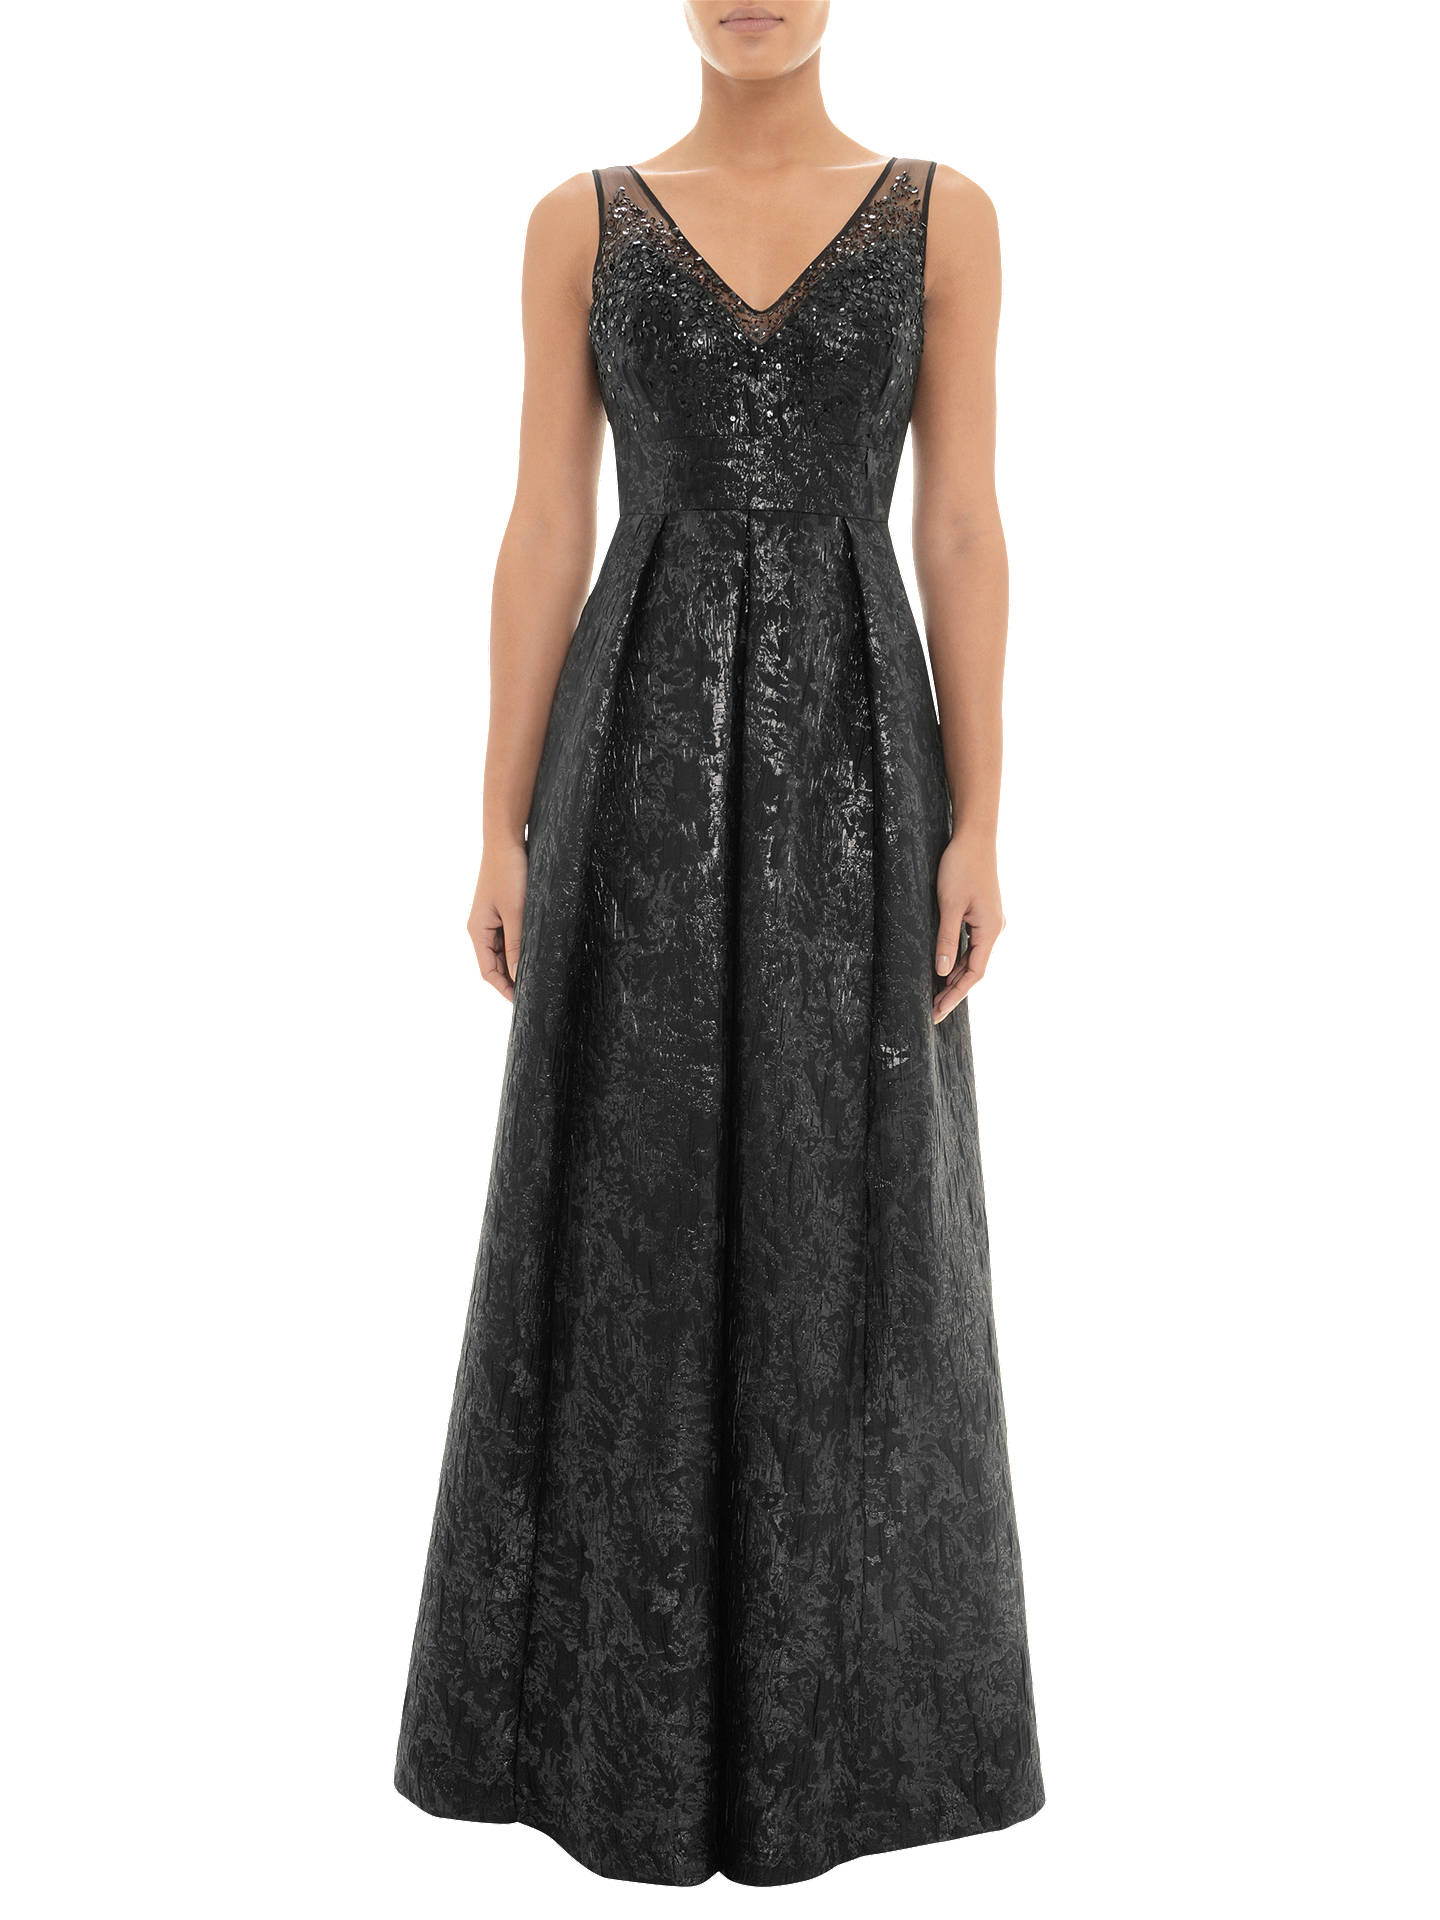 Adrianna Papell Beaded Jacquard Gown Black At John Lewis Partners